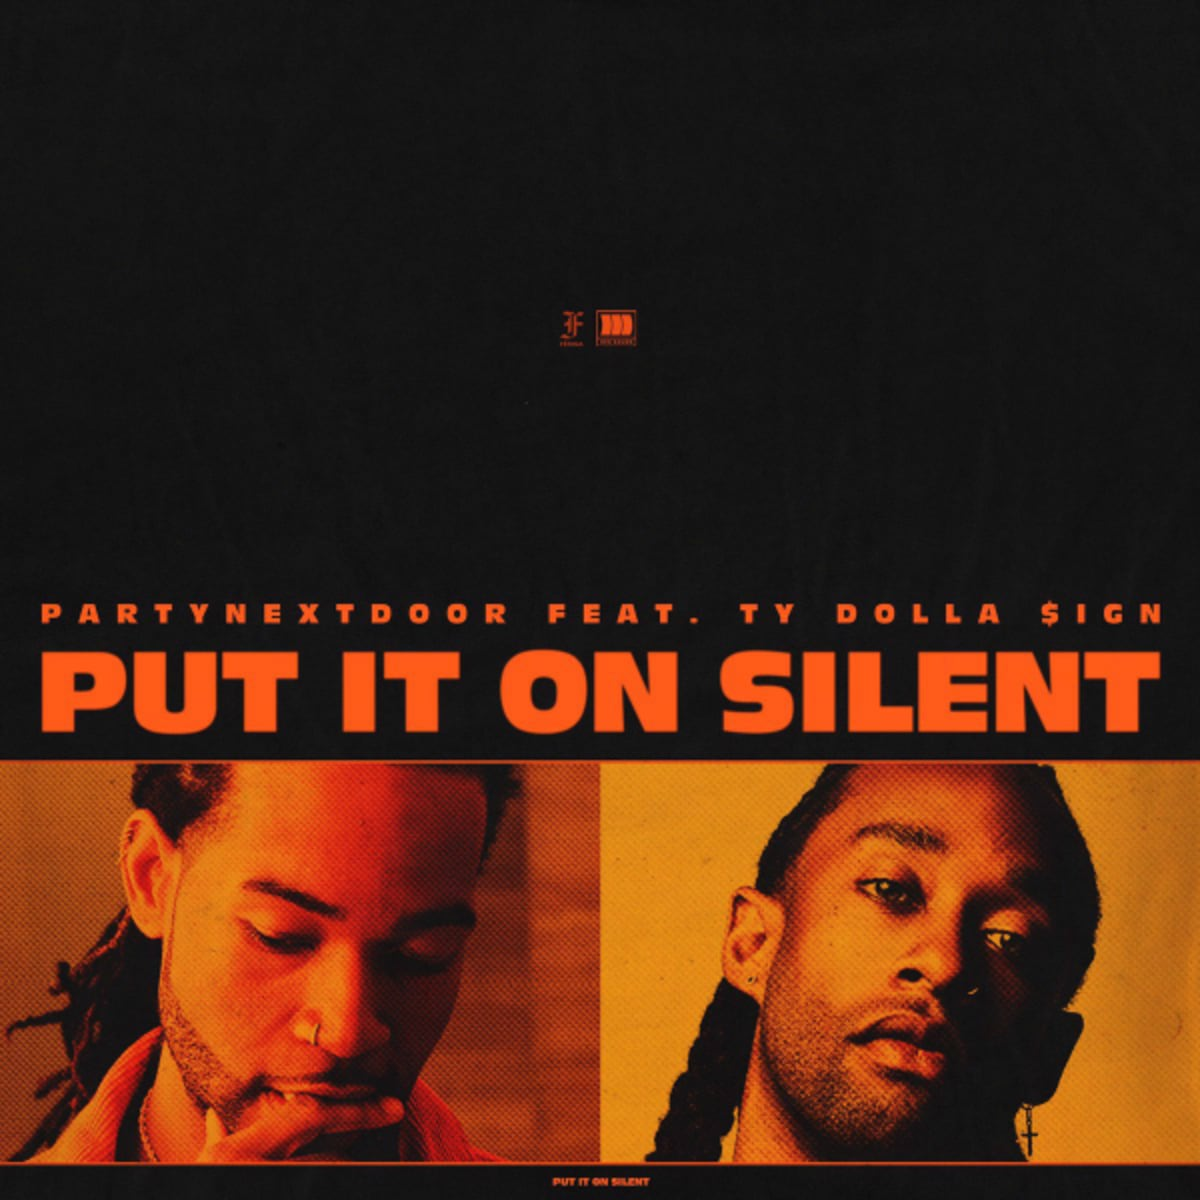 PartyNextDoor x Ty Dolla $ign Drop New 'Put It On Silent' Song [Listen] partynextdoor ty dolla sign put it on silent cover